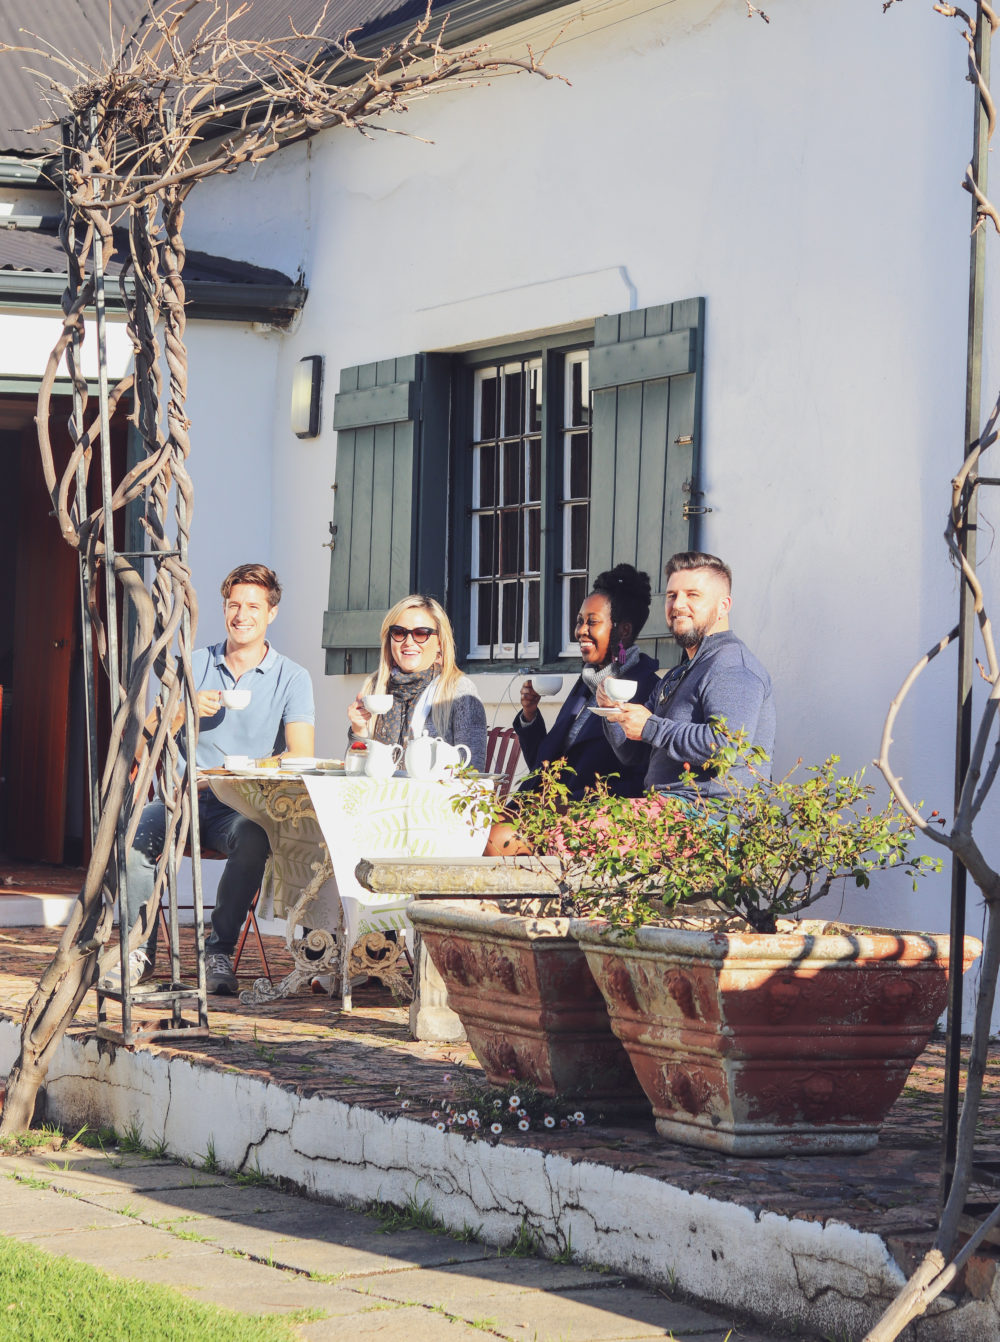 Elgin: Home to South Africa's Elegant Cool Climate Wines